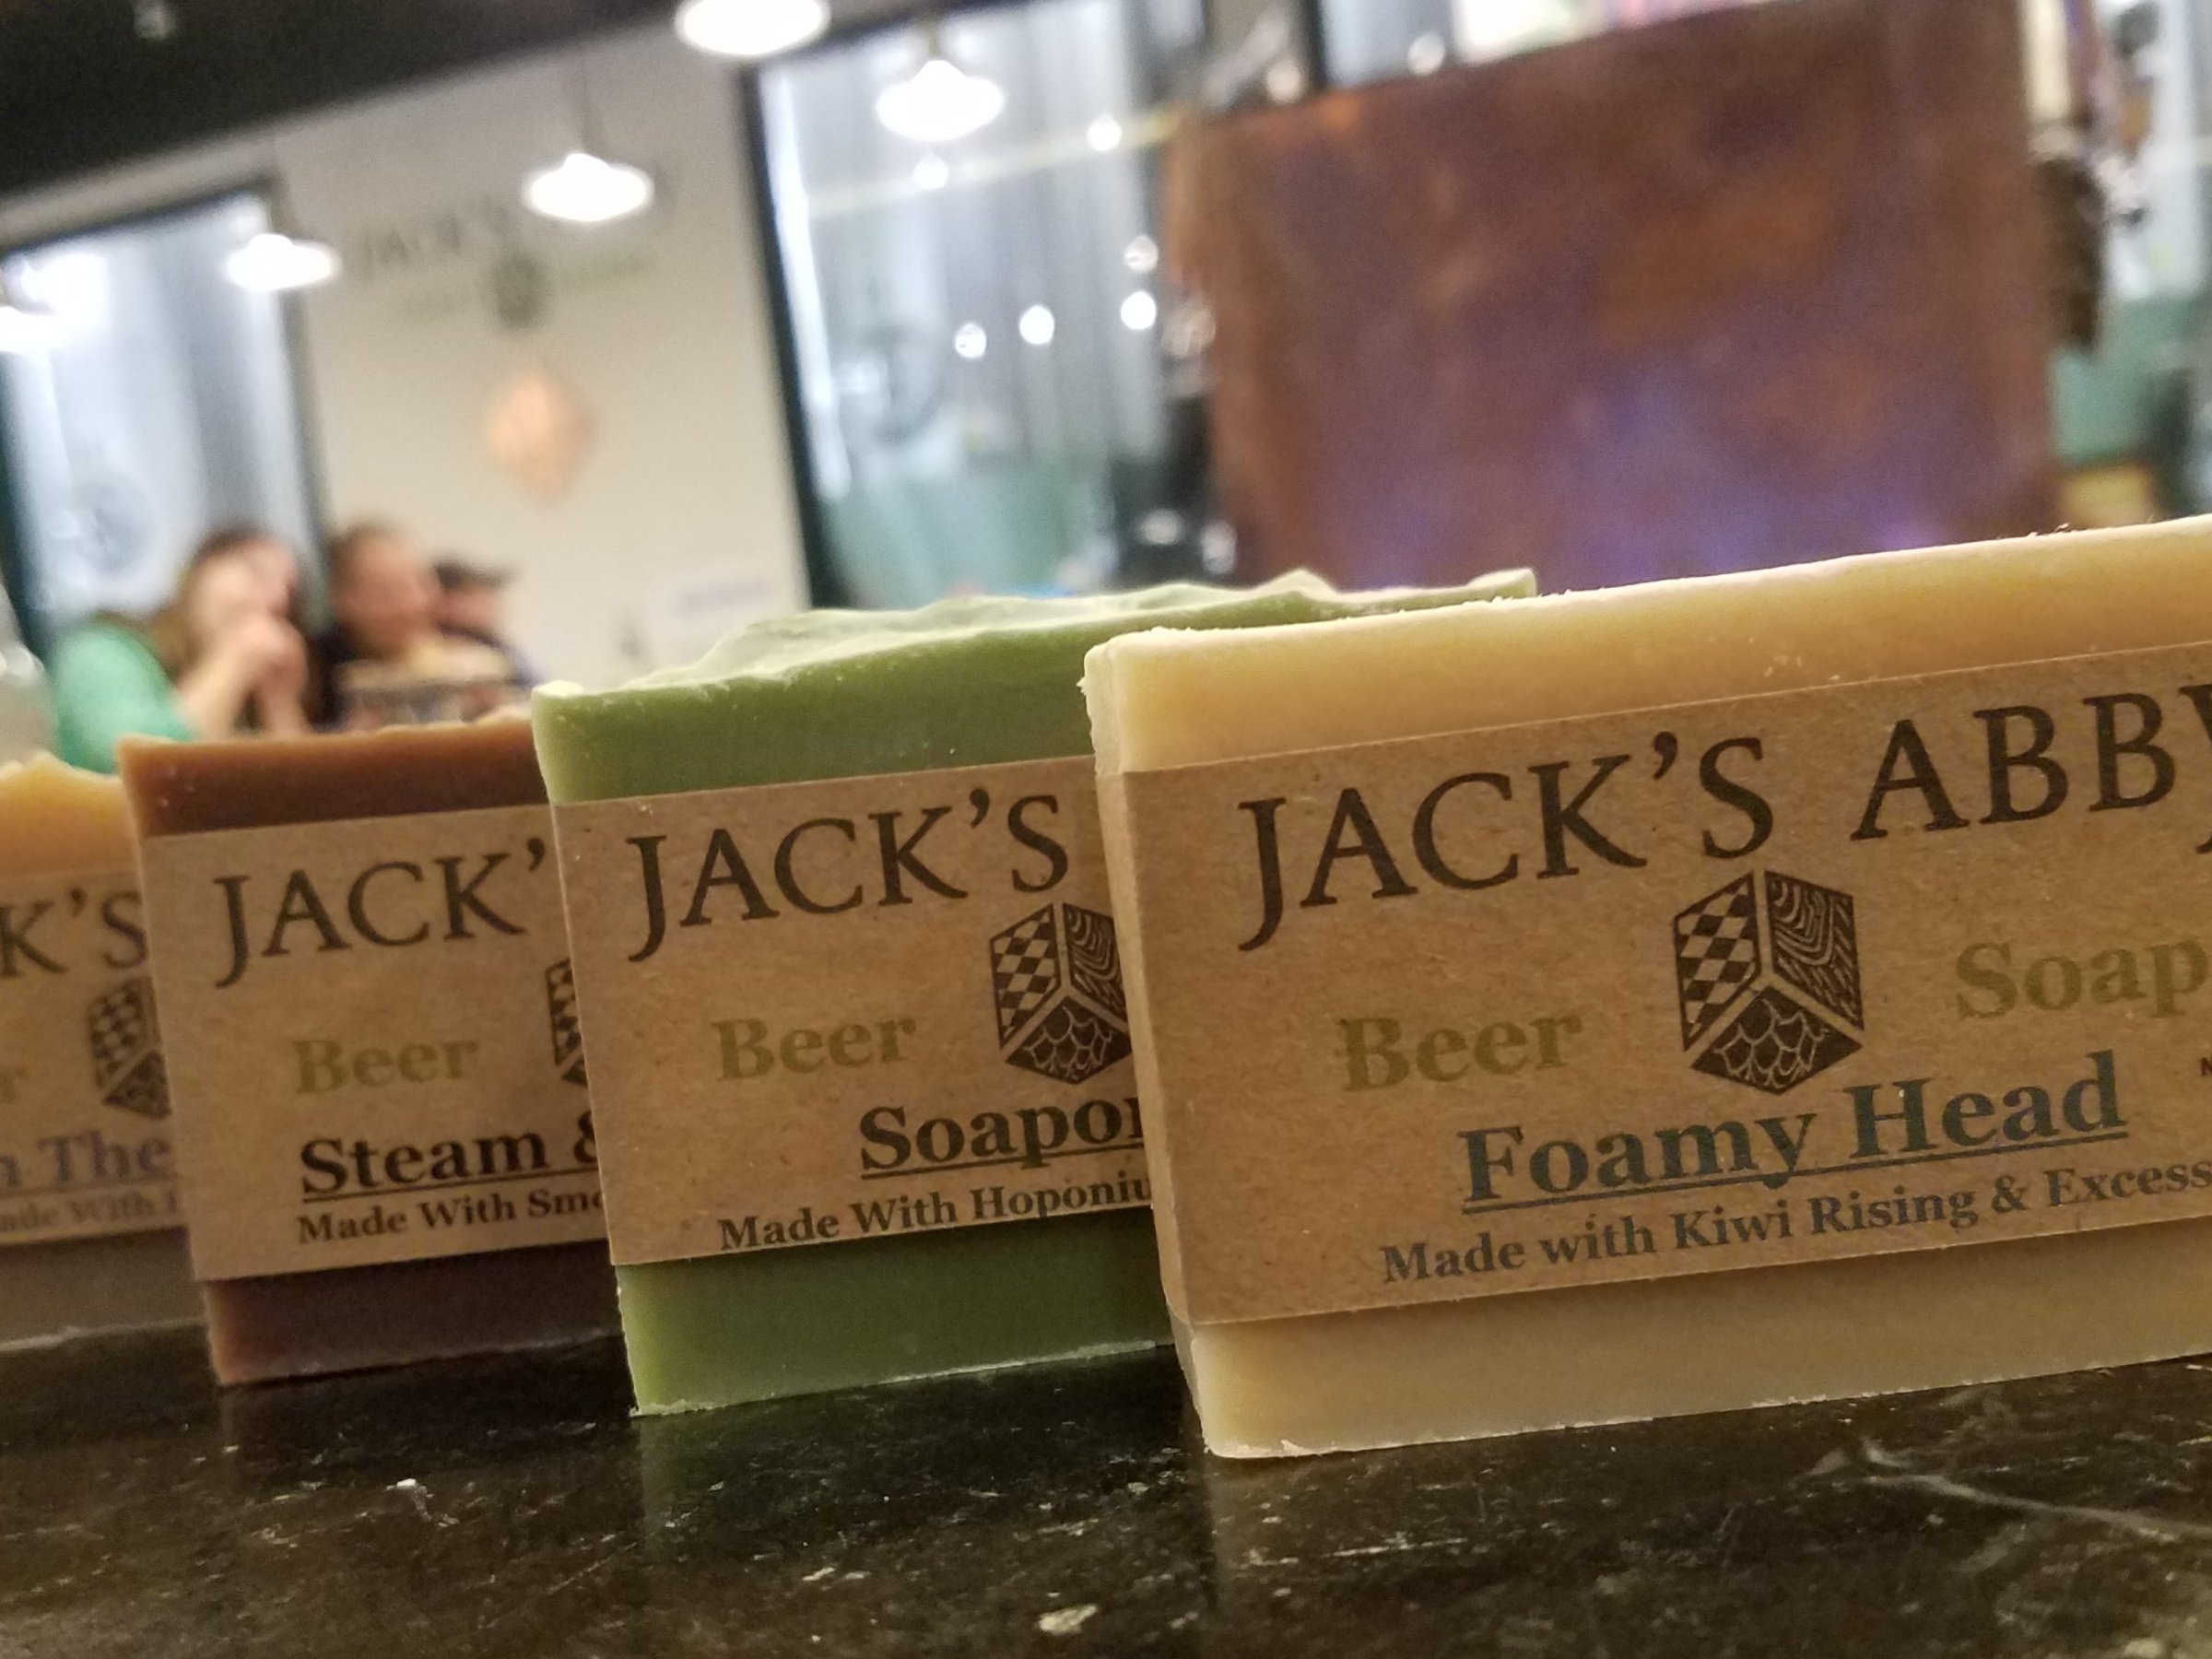 Red Castle Beer Soap - Home-court advantage goes to Red Castle Beer Soap!This beer soap is made by hand in the traditional cold process method, and it is the perfect stocking stuffer!> Pair it with Between the Clouds